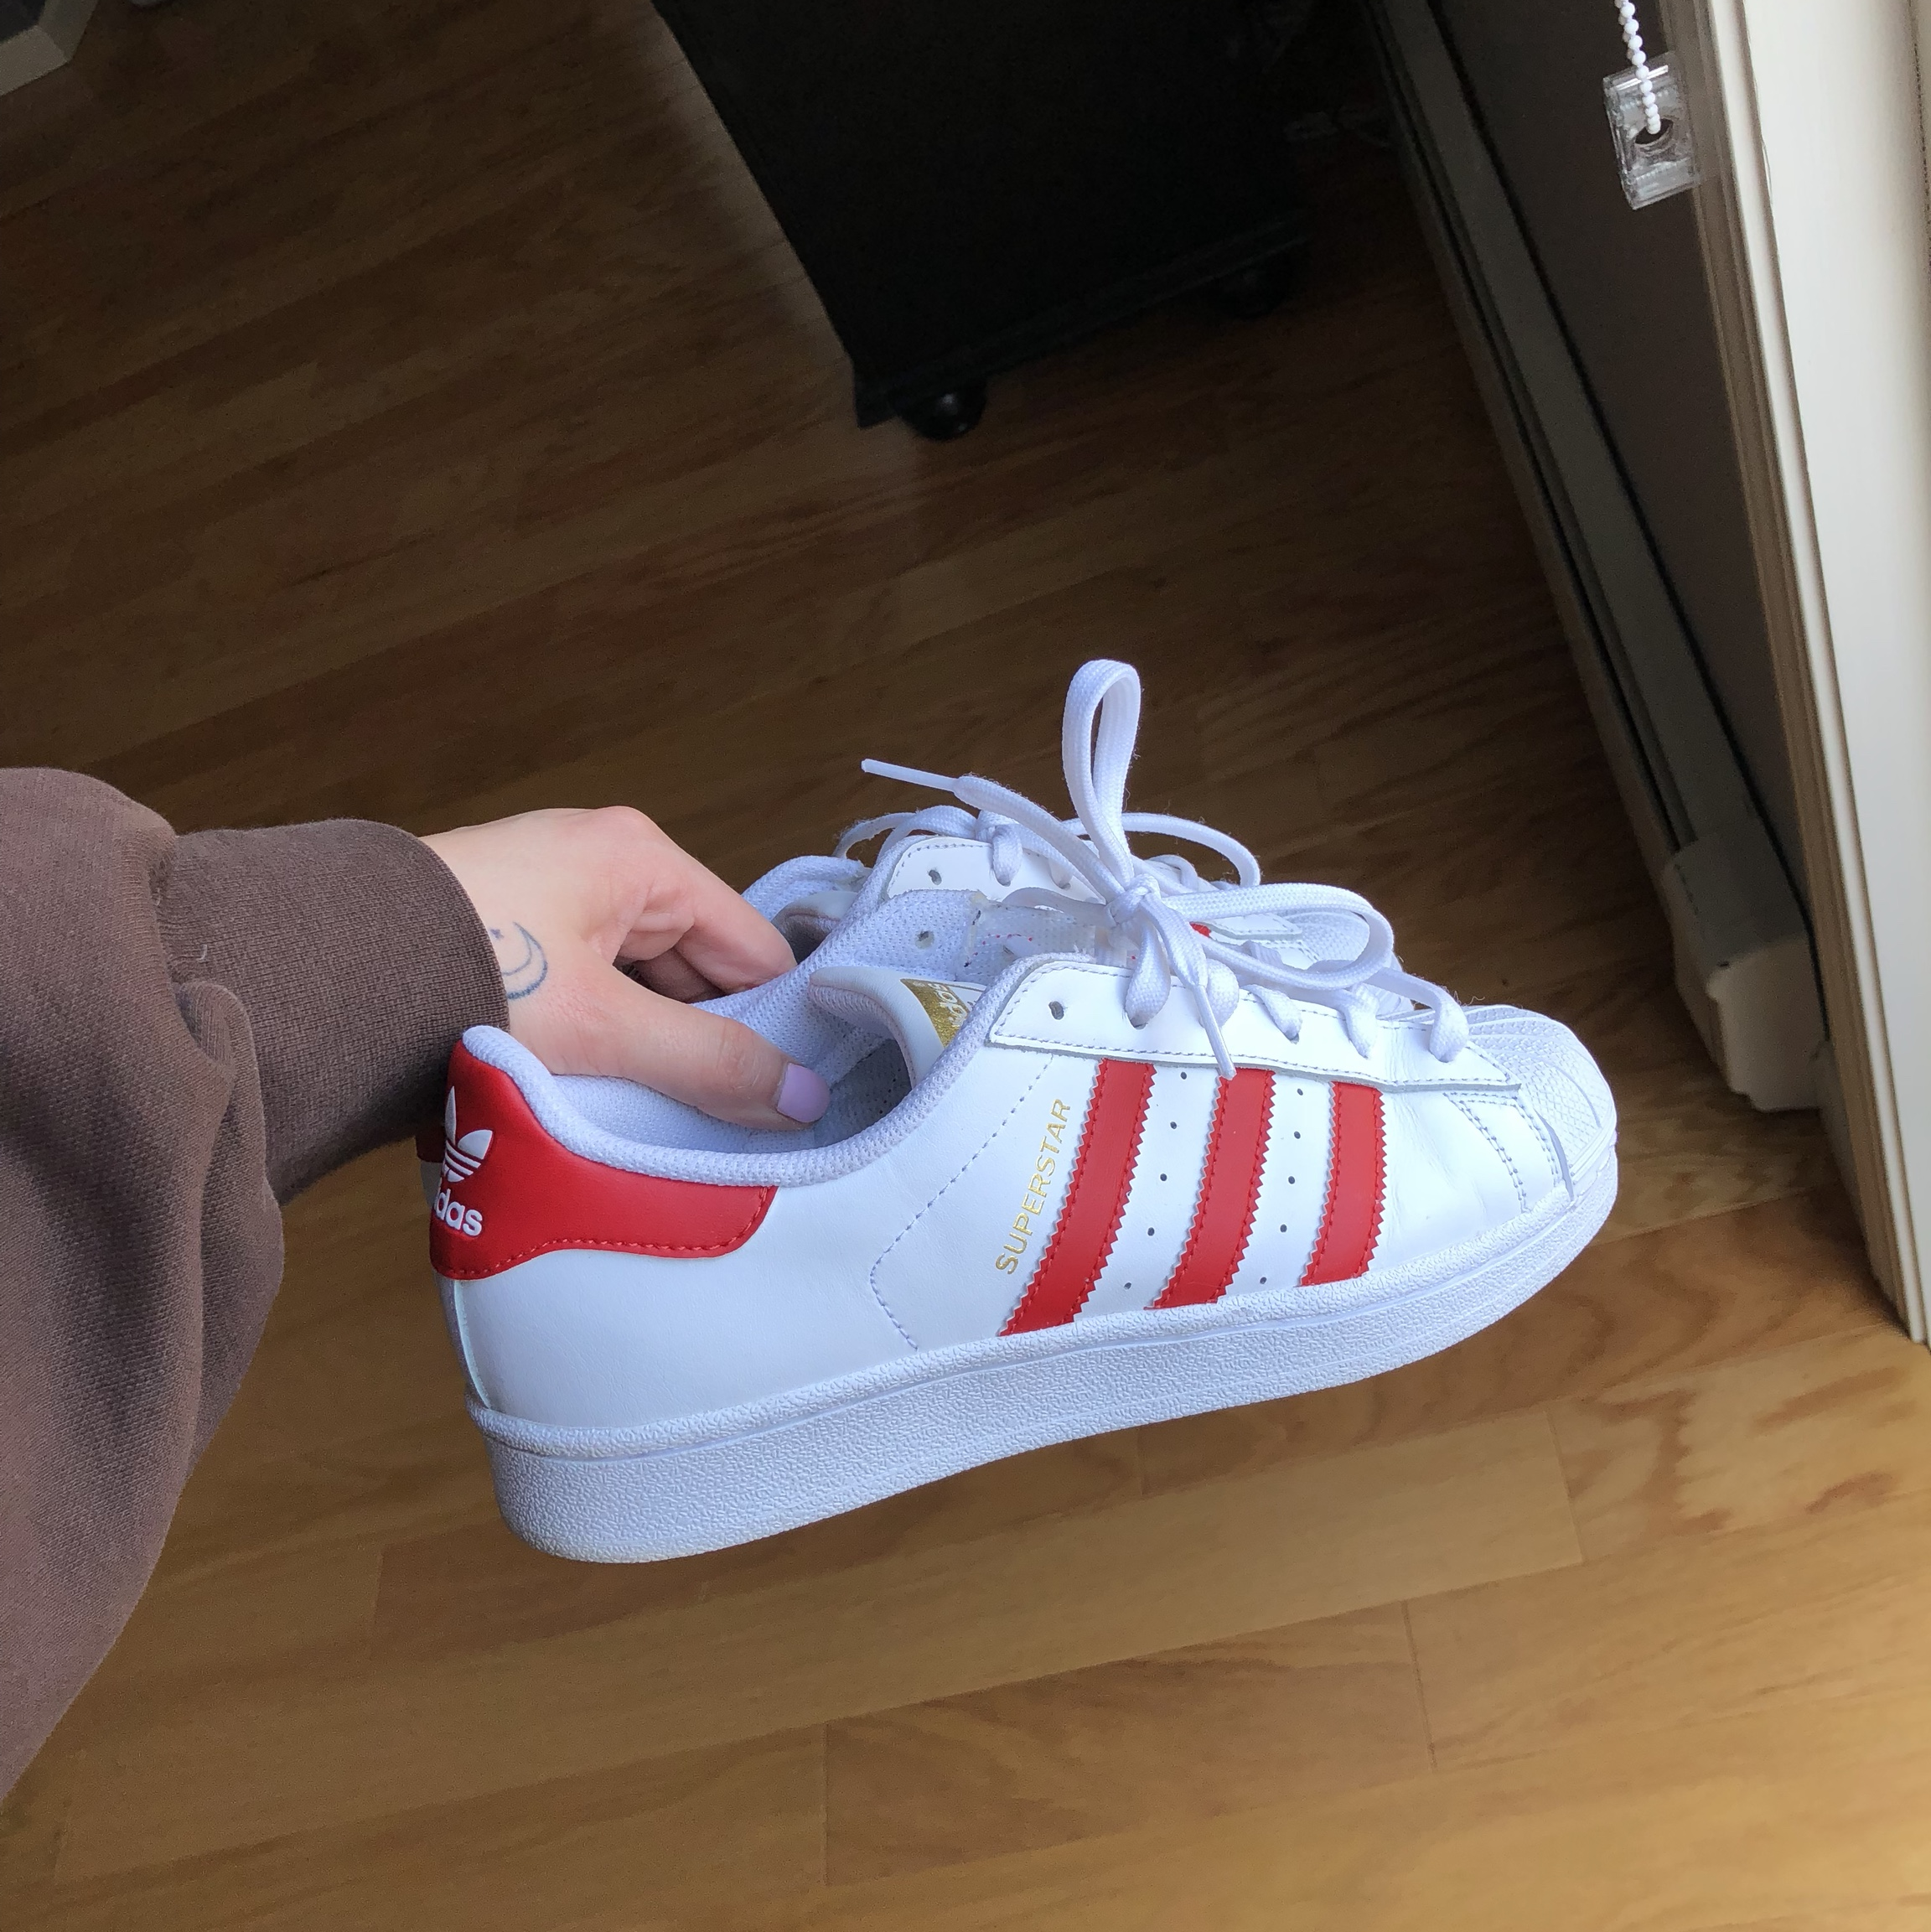 Adidas Shell toe/ superstar in the